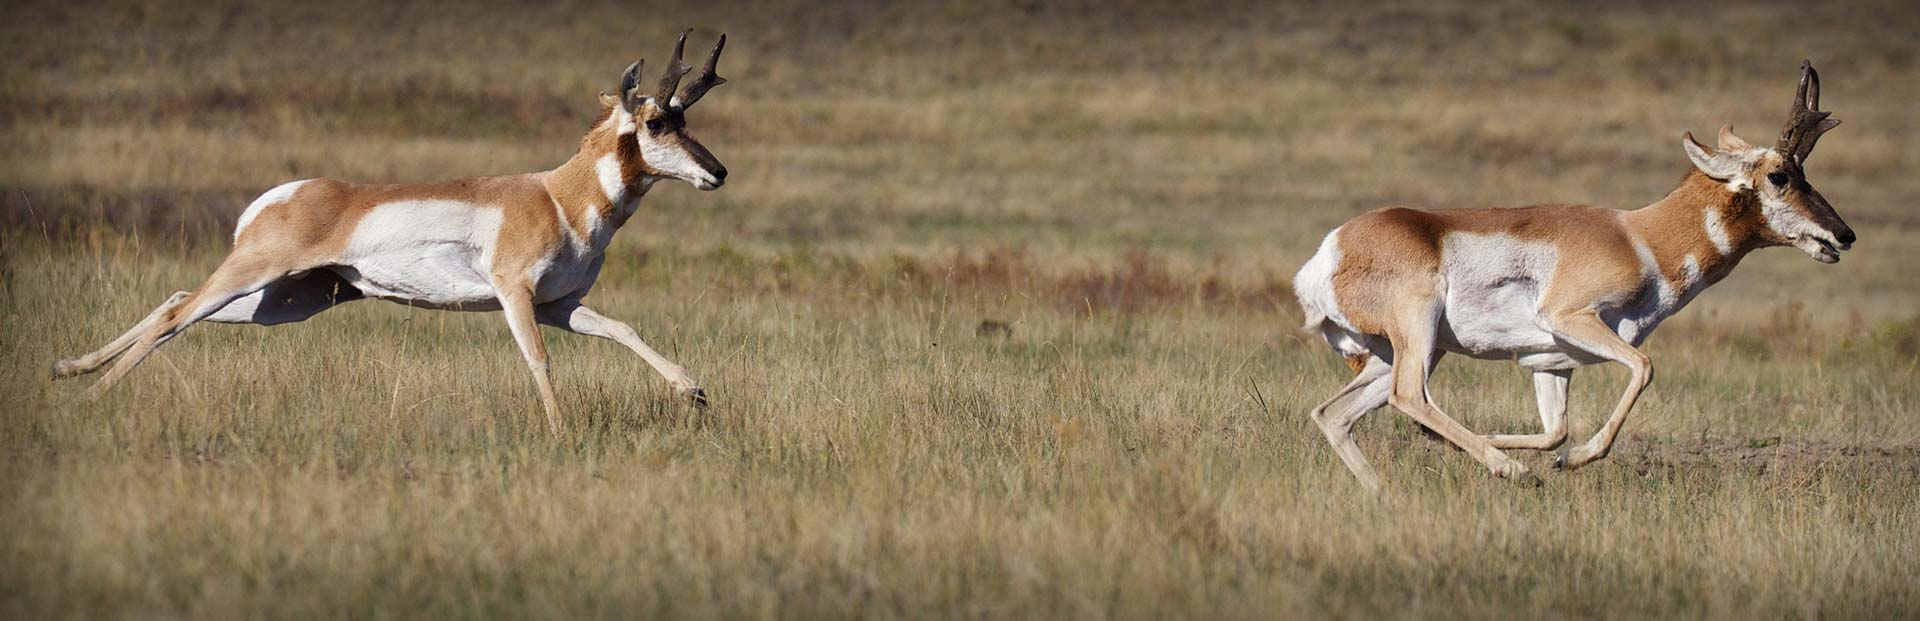 California Pronghorn Hunting Guides & Outfitters